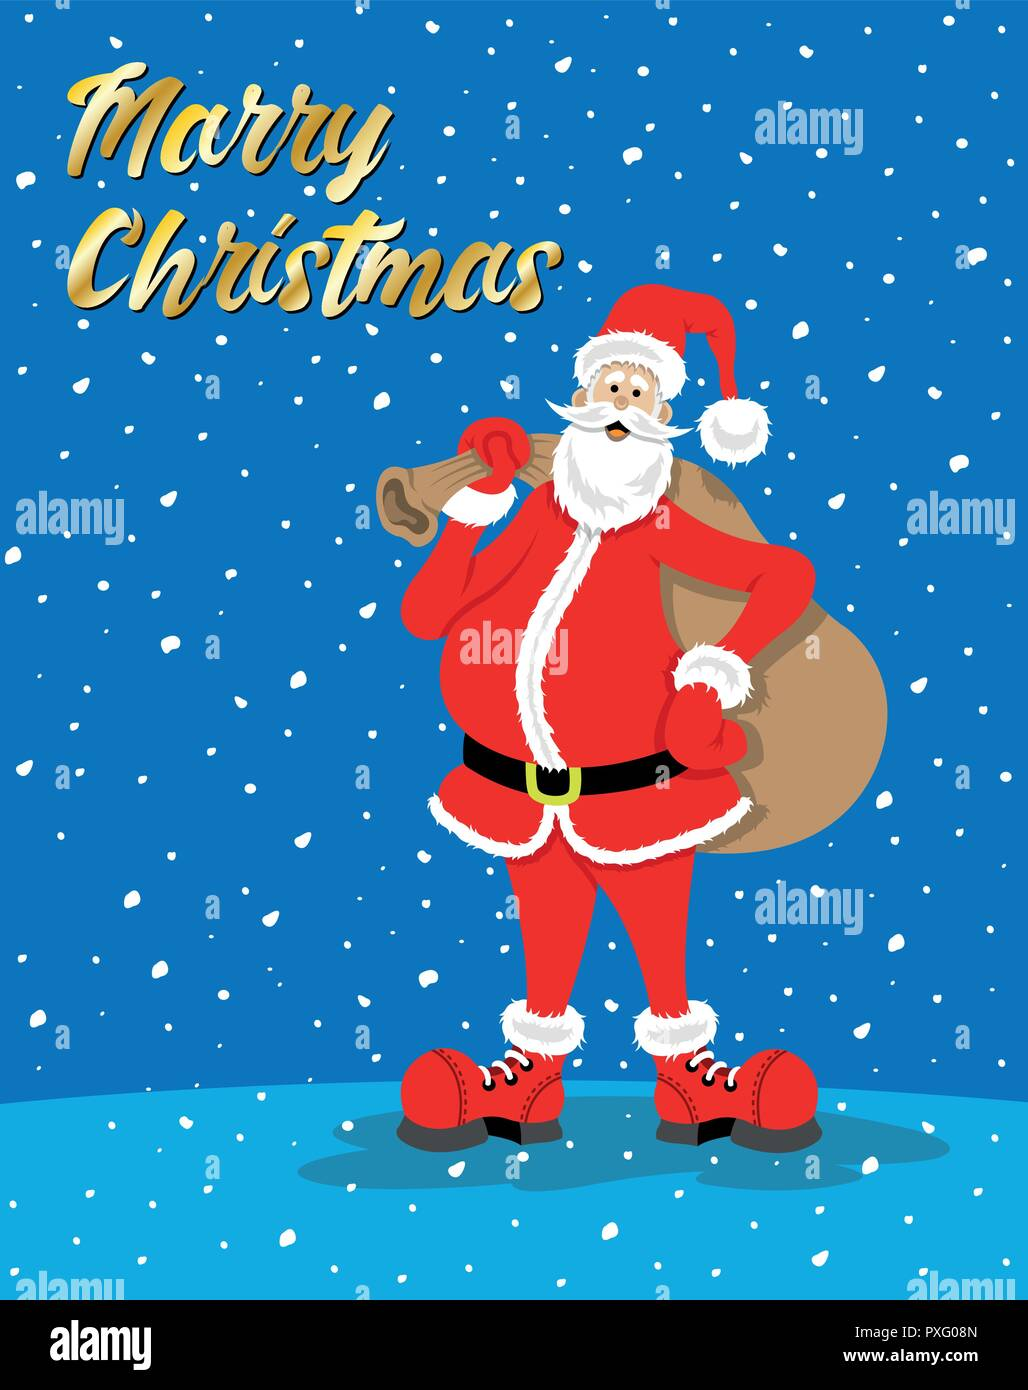 Santa Claus cartoon with merry christmas message while it\'s snowing ...